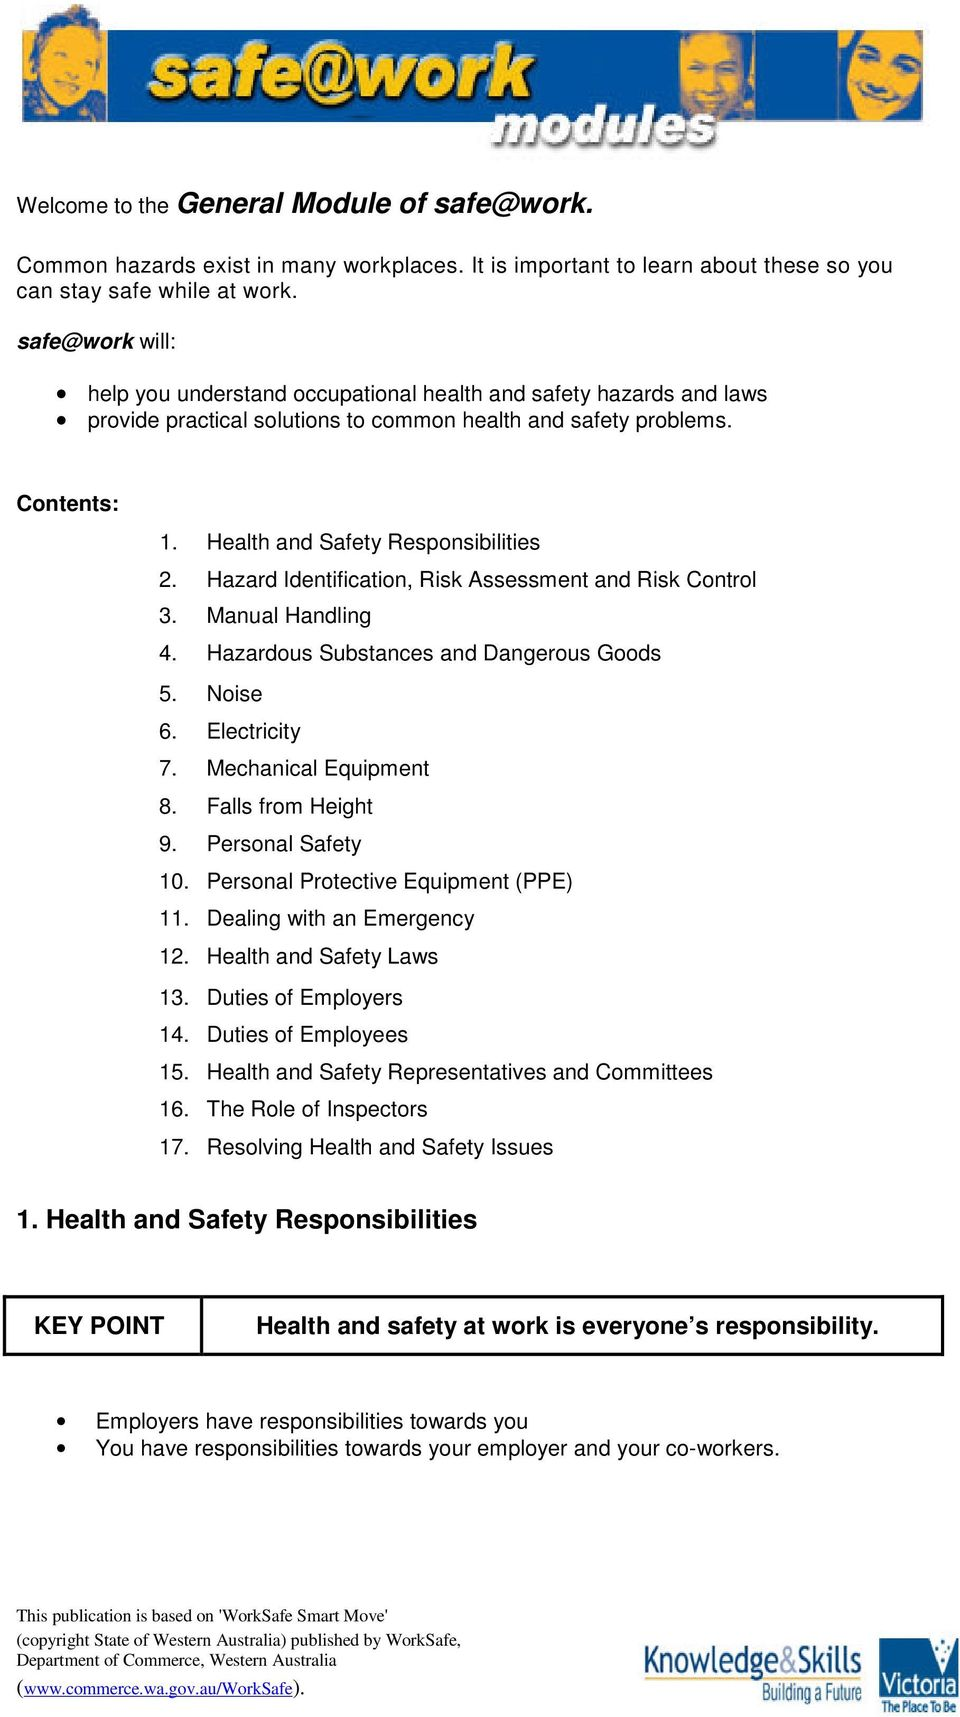 Hazard Identification, Risk Assessment and Risk Control 3. Manual Handling 4. Hazardous Substances and Dangerous Goods 5. Noise 6. Electricity 7. Mechanical Equipment 8. Falls from Height 9.